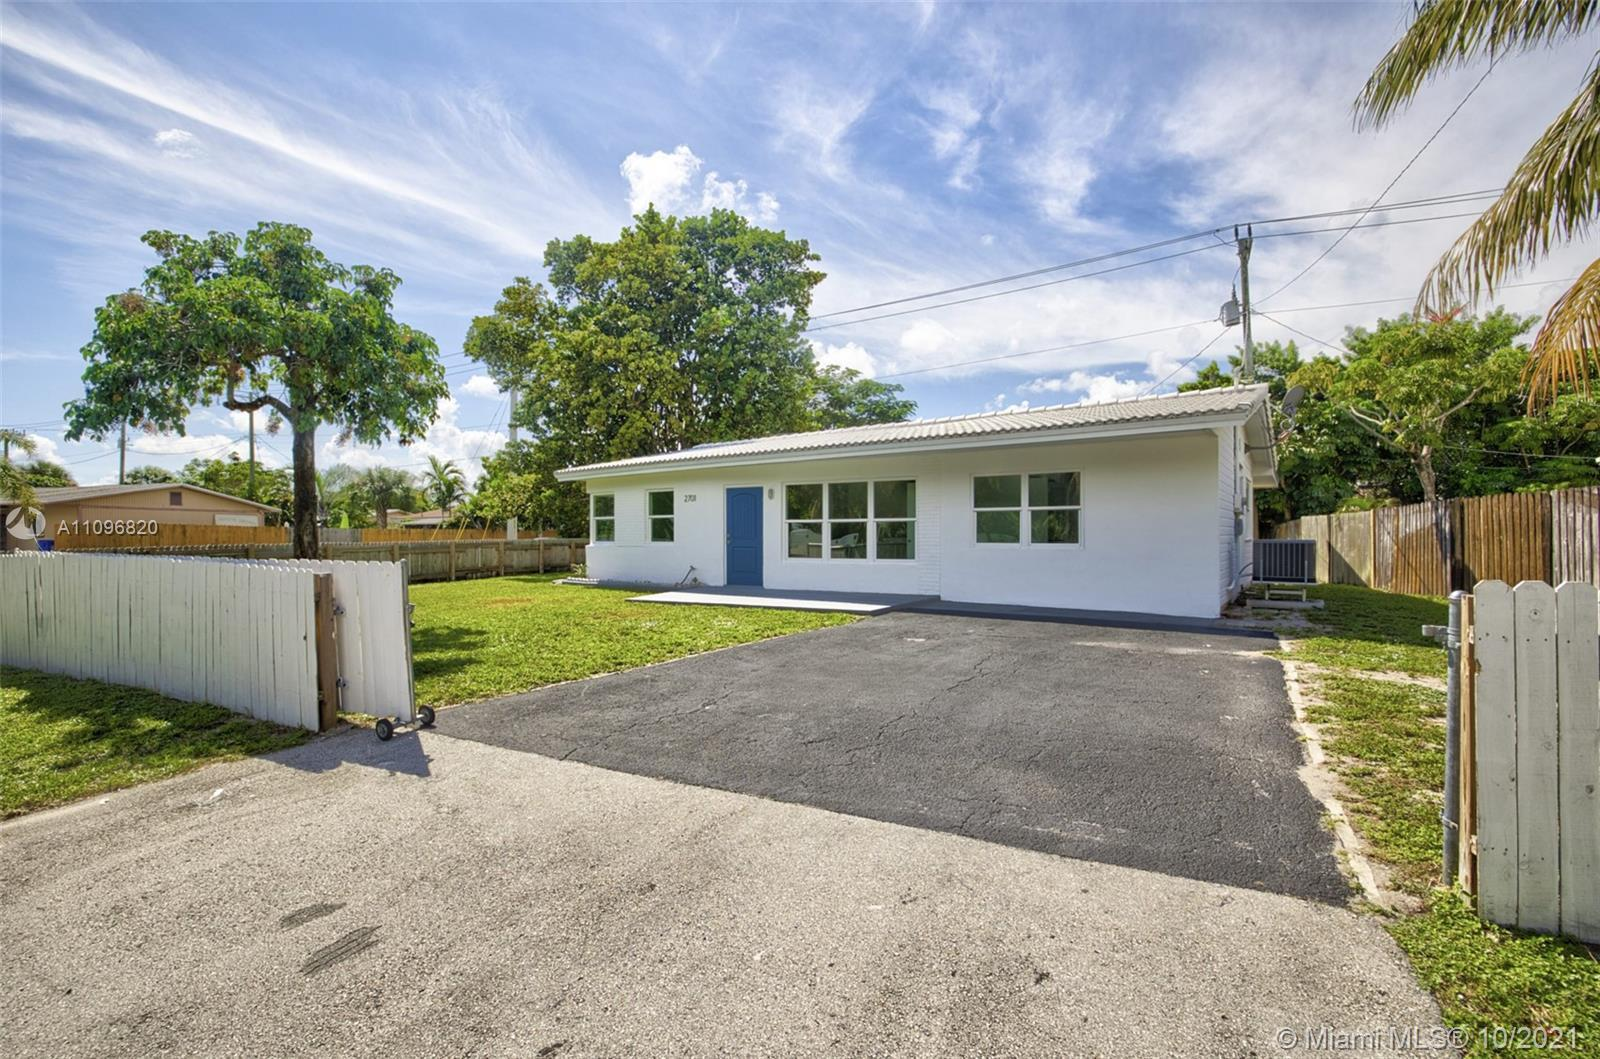 Remodeled 4/2. Nice area. New impact windows. New kitchen with quartz countertops. Recent tile roof.